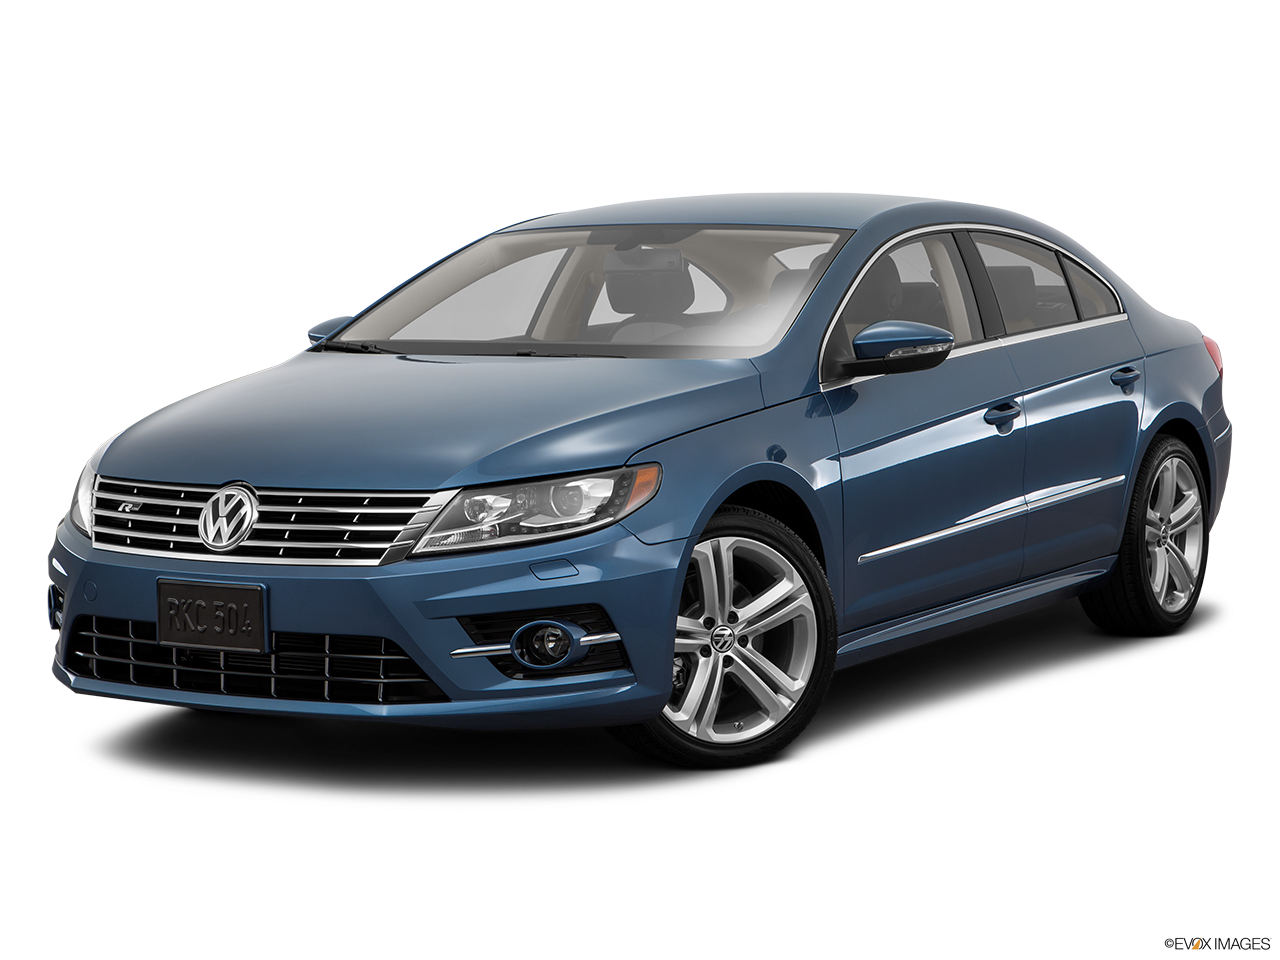 Test Drive A 2016 Volkswagen CC at Herman Cook Volkswagen in San Diego